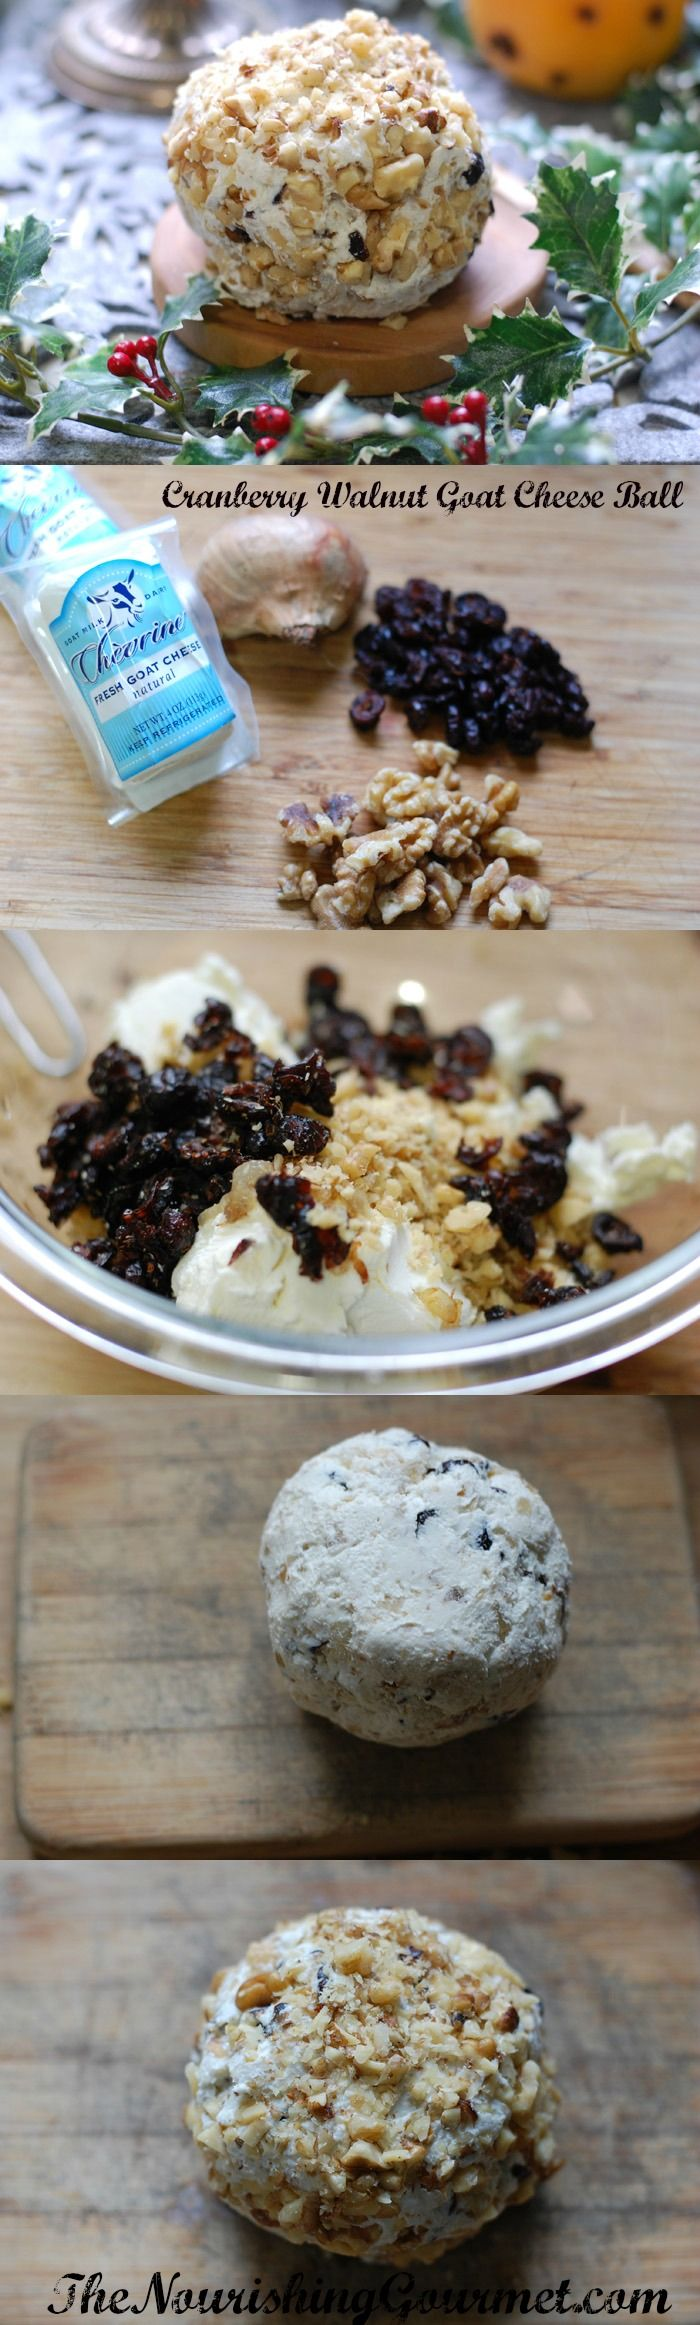 Cranberry Walnut Goat Cheese Ball Recipe- Perfect to serve at parties, as an appetizer, or to give away as a food gift! You can serve it with crackers of choice or crudites. It would be a beautiful addition to a cheese platter. -- The Nourishing Gourmet